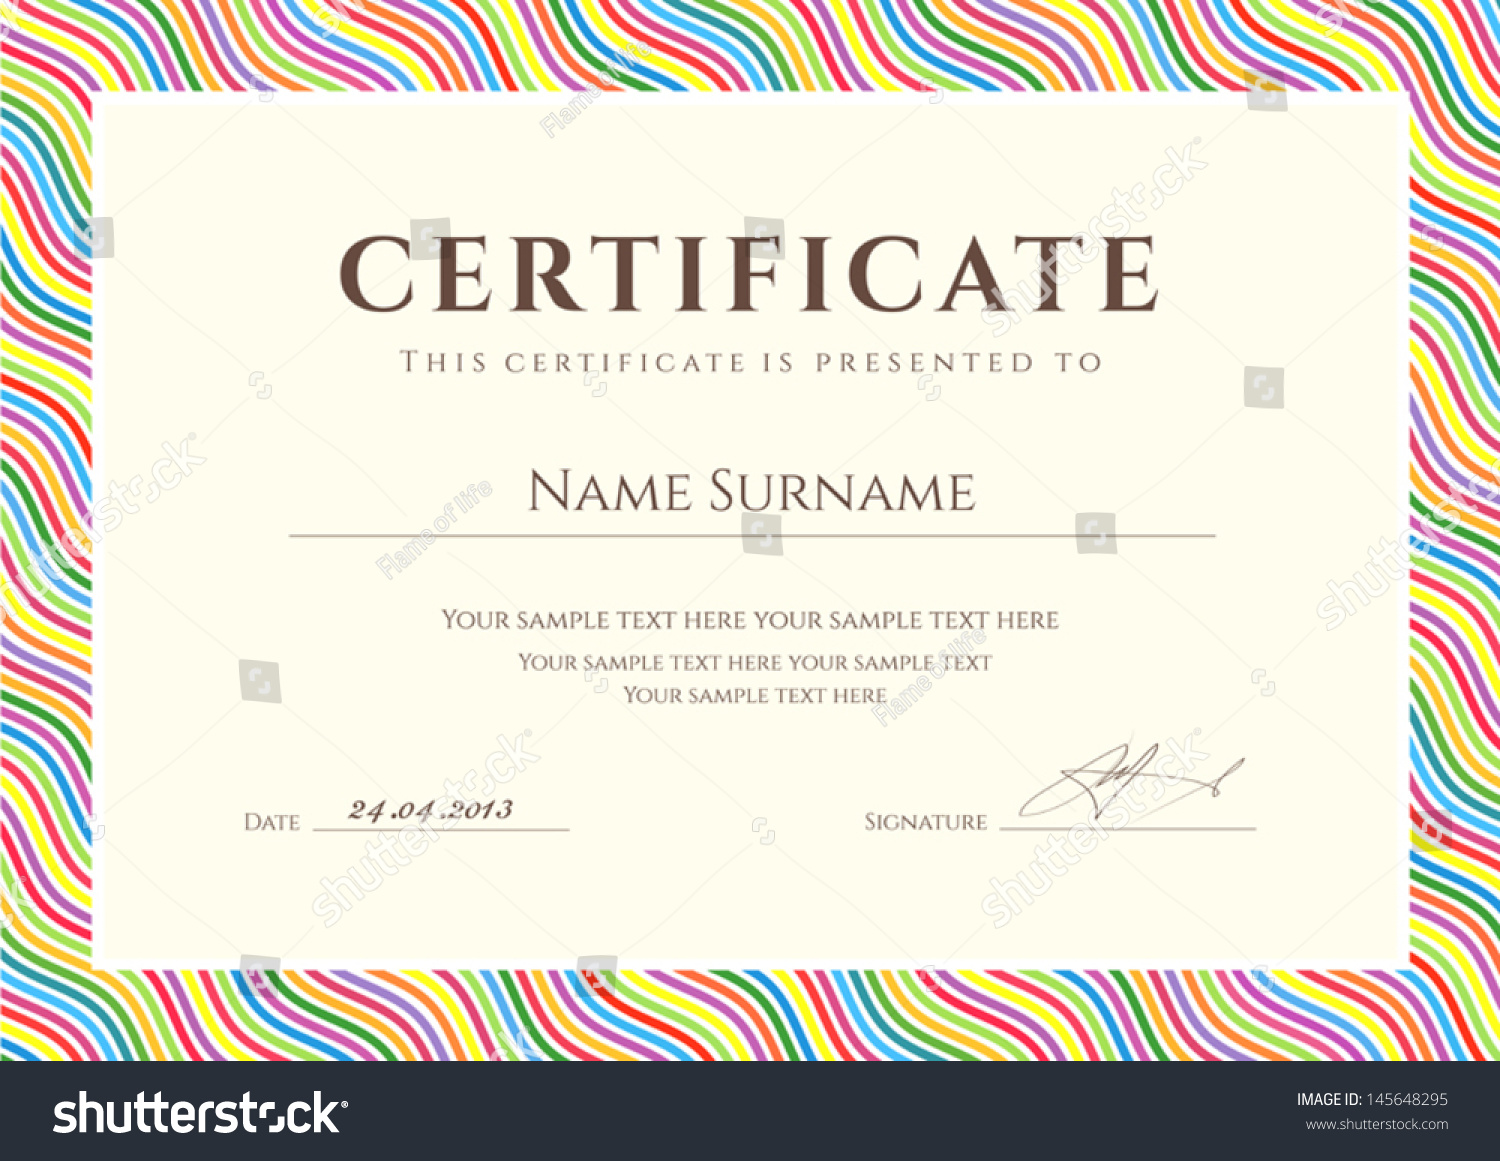 Certificate Completion Template Sample Background Colorful – Certificate of Completion Sample